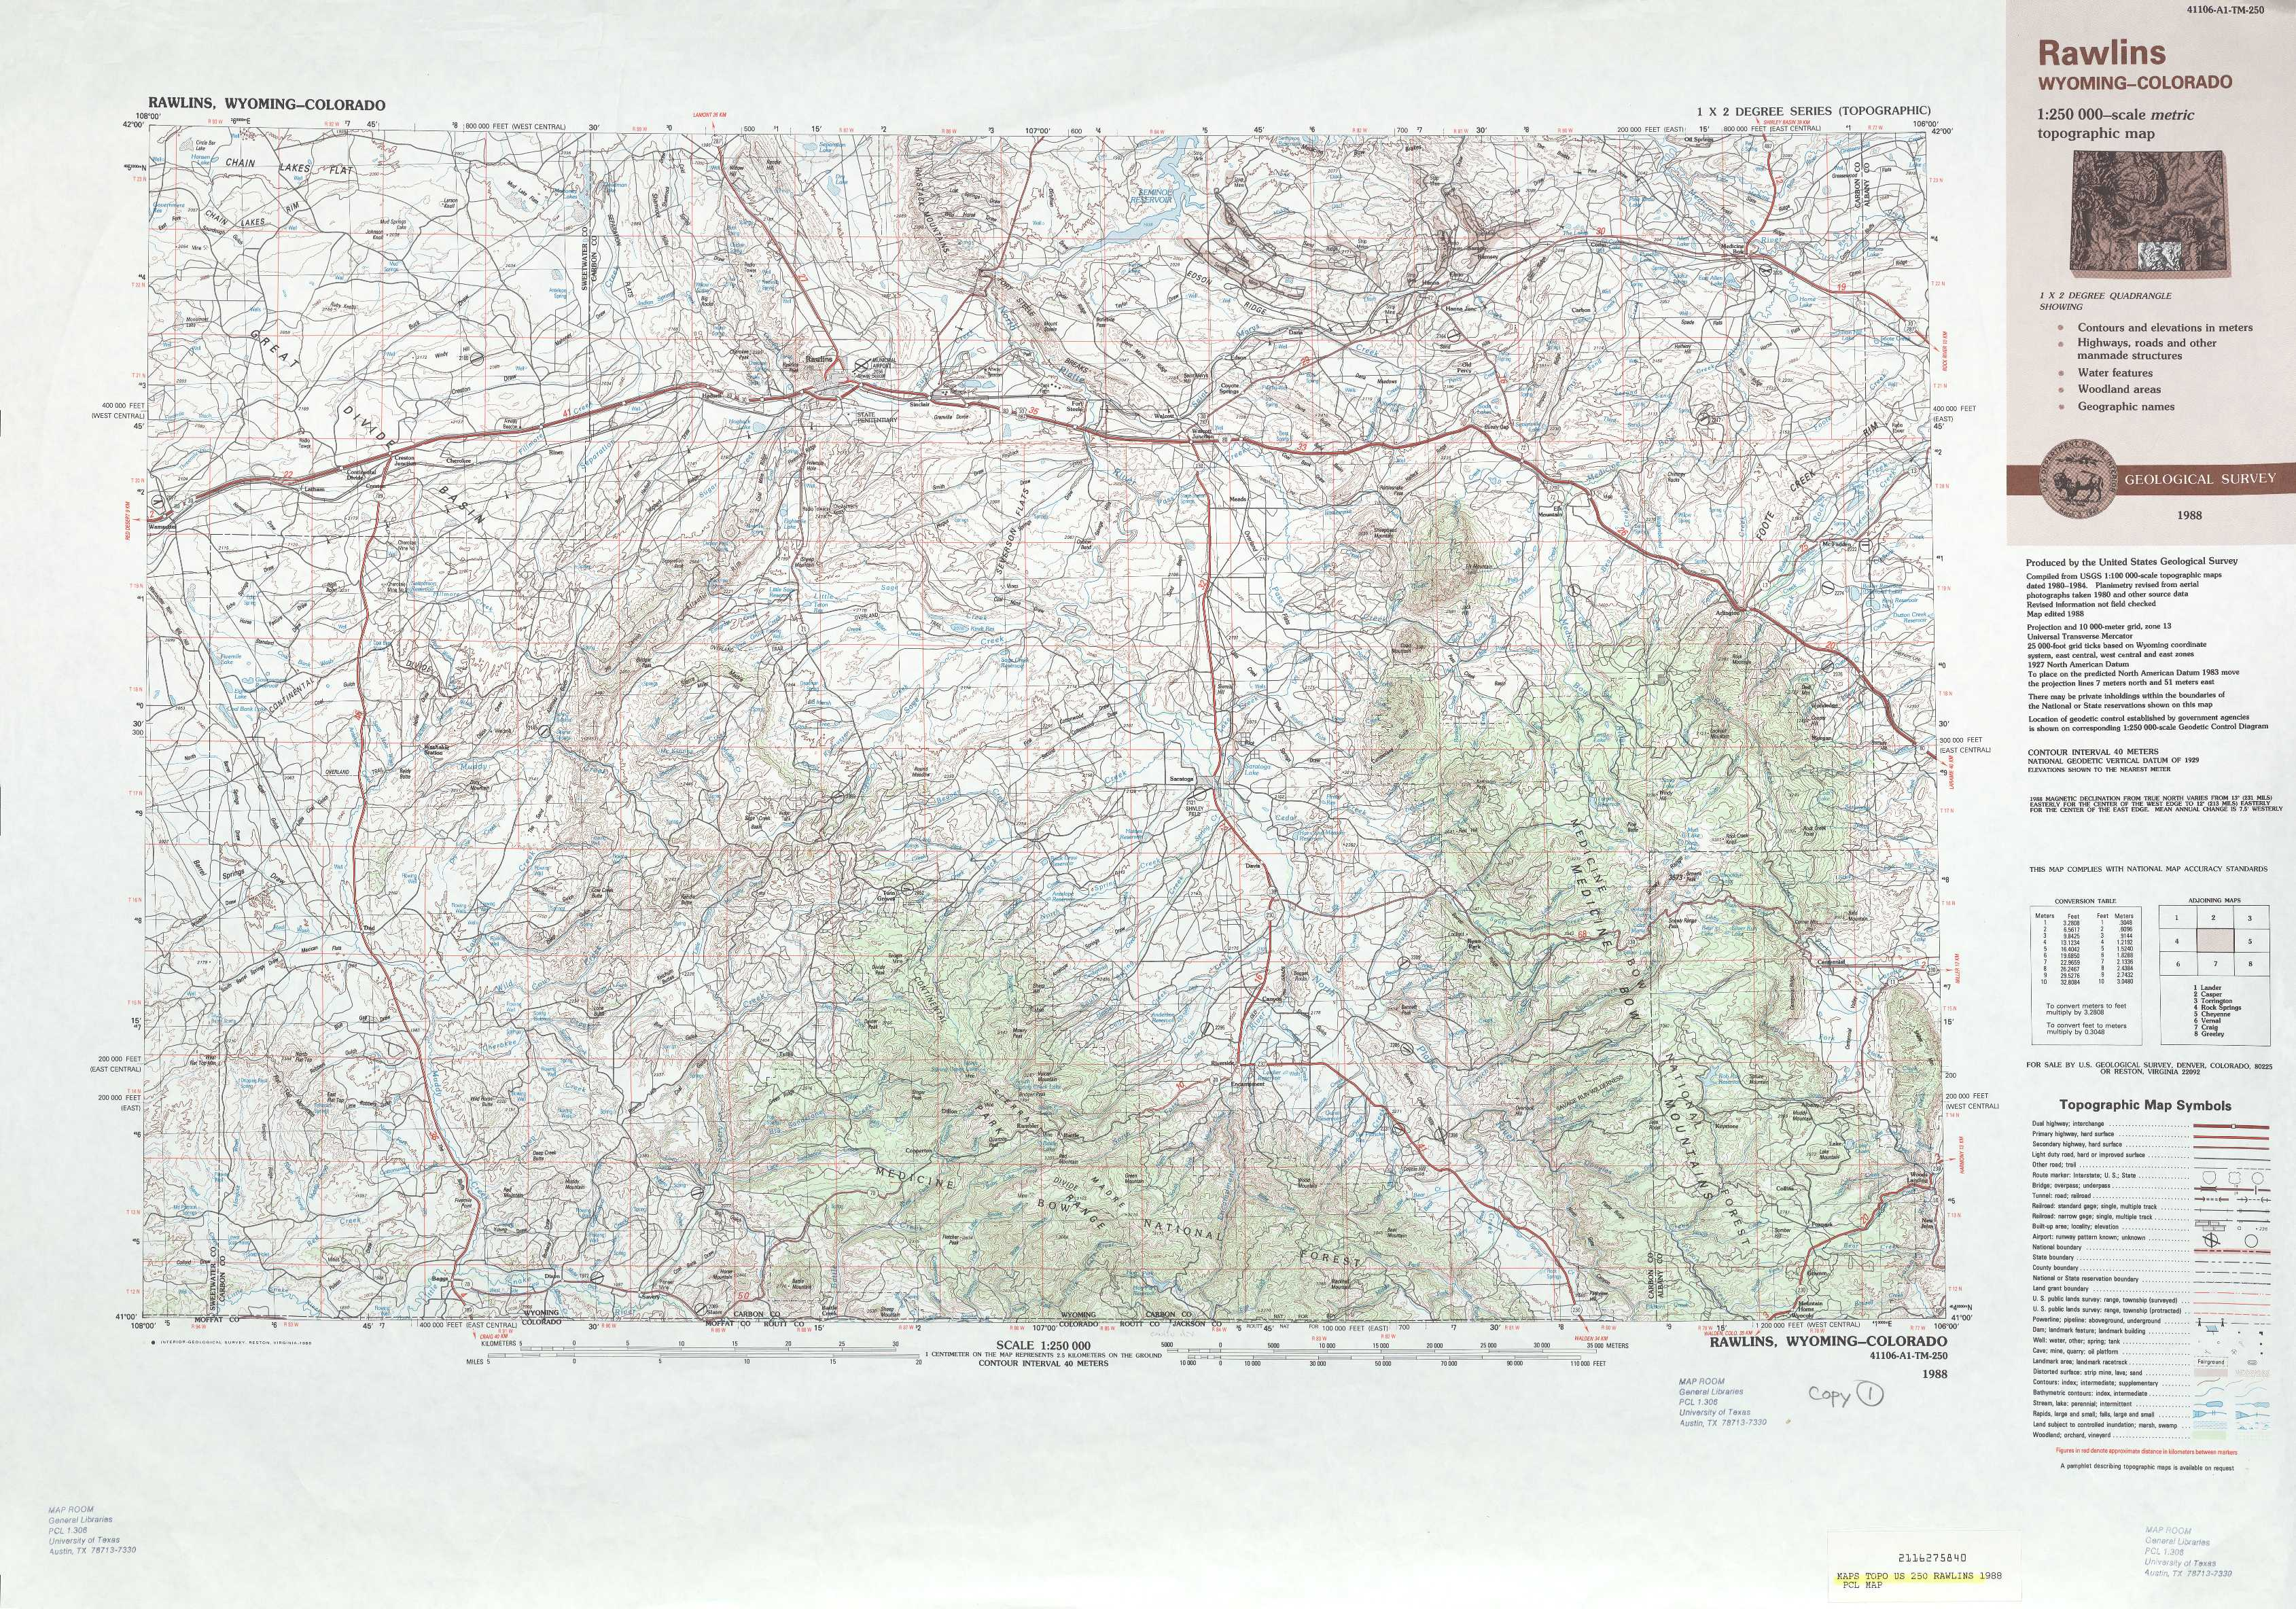 Rawlins topographic maps WY USGS Topo Quad 41106a1 at 1250000 scale